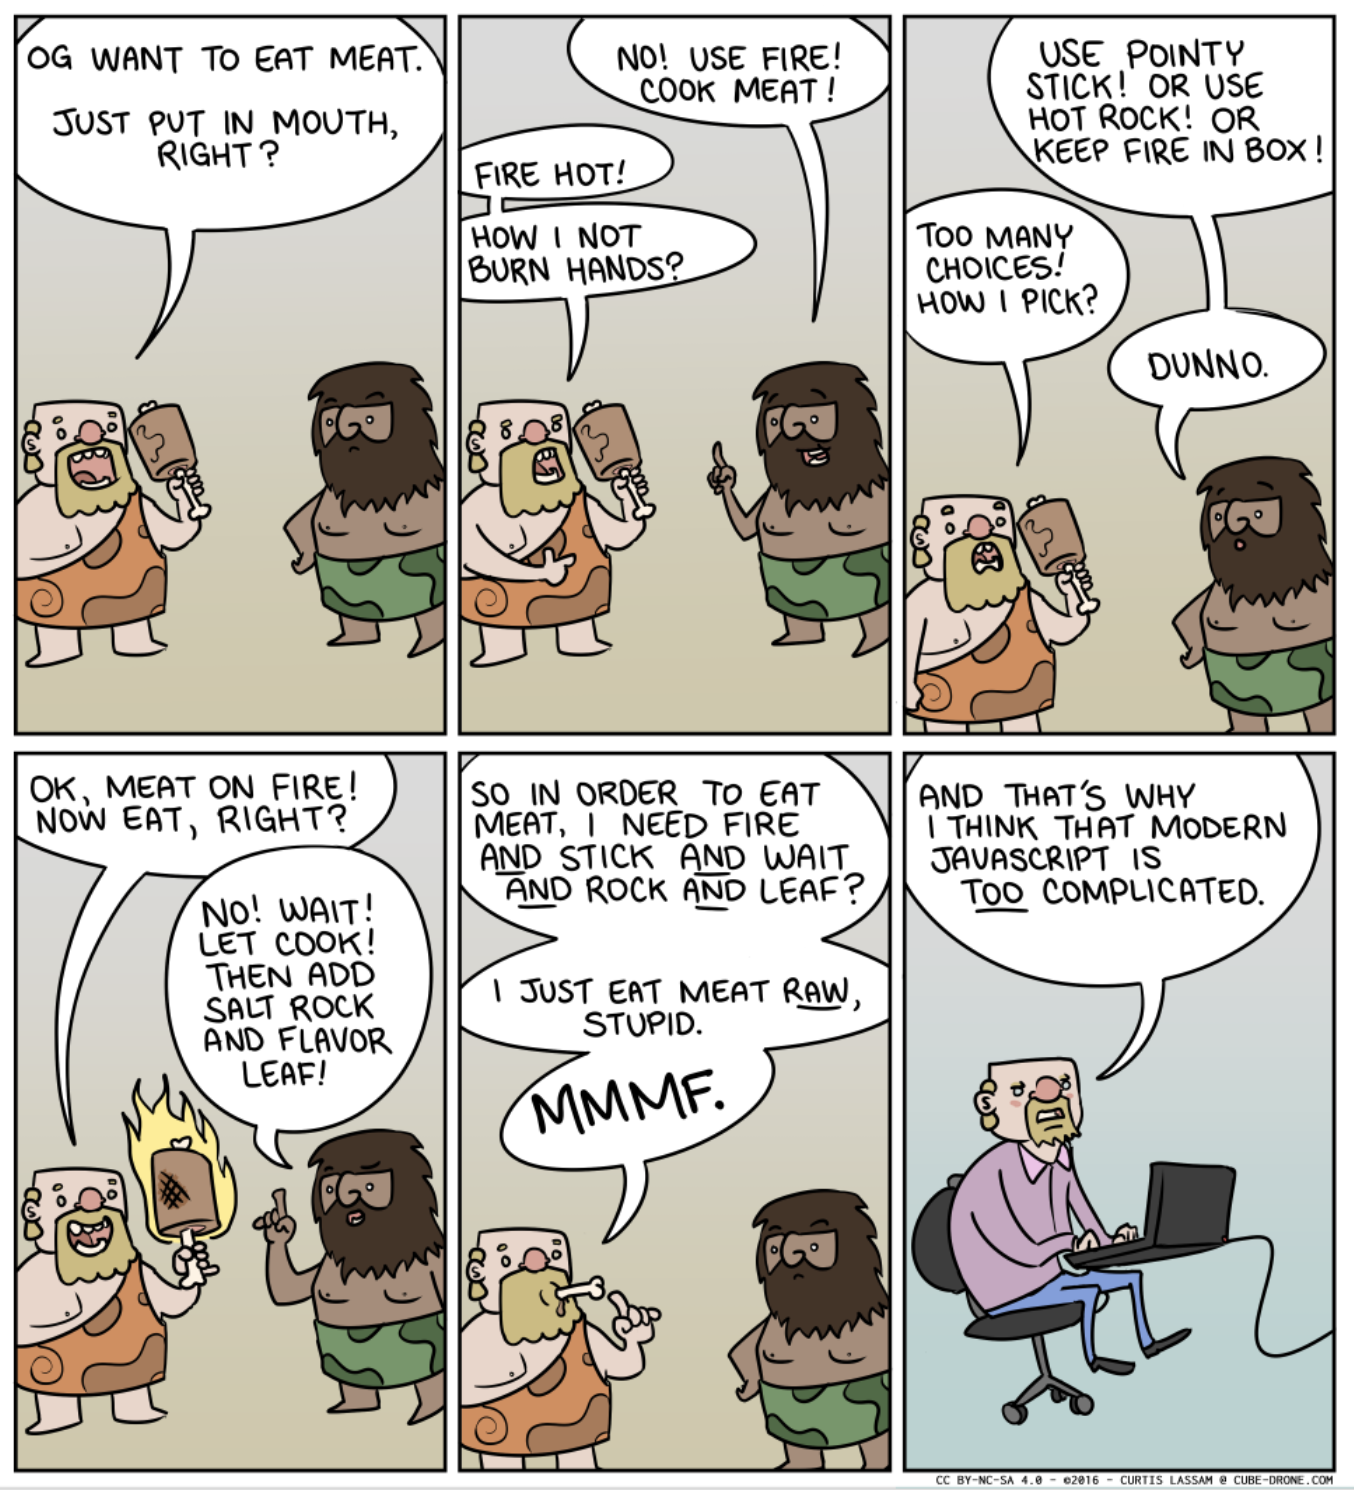 modernwebdeveloperwebcomic.png